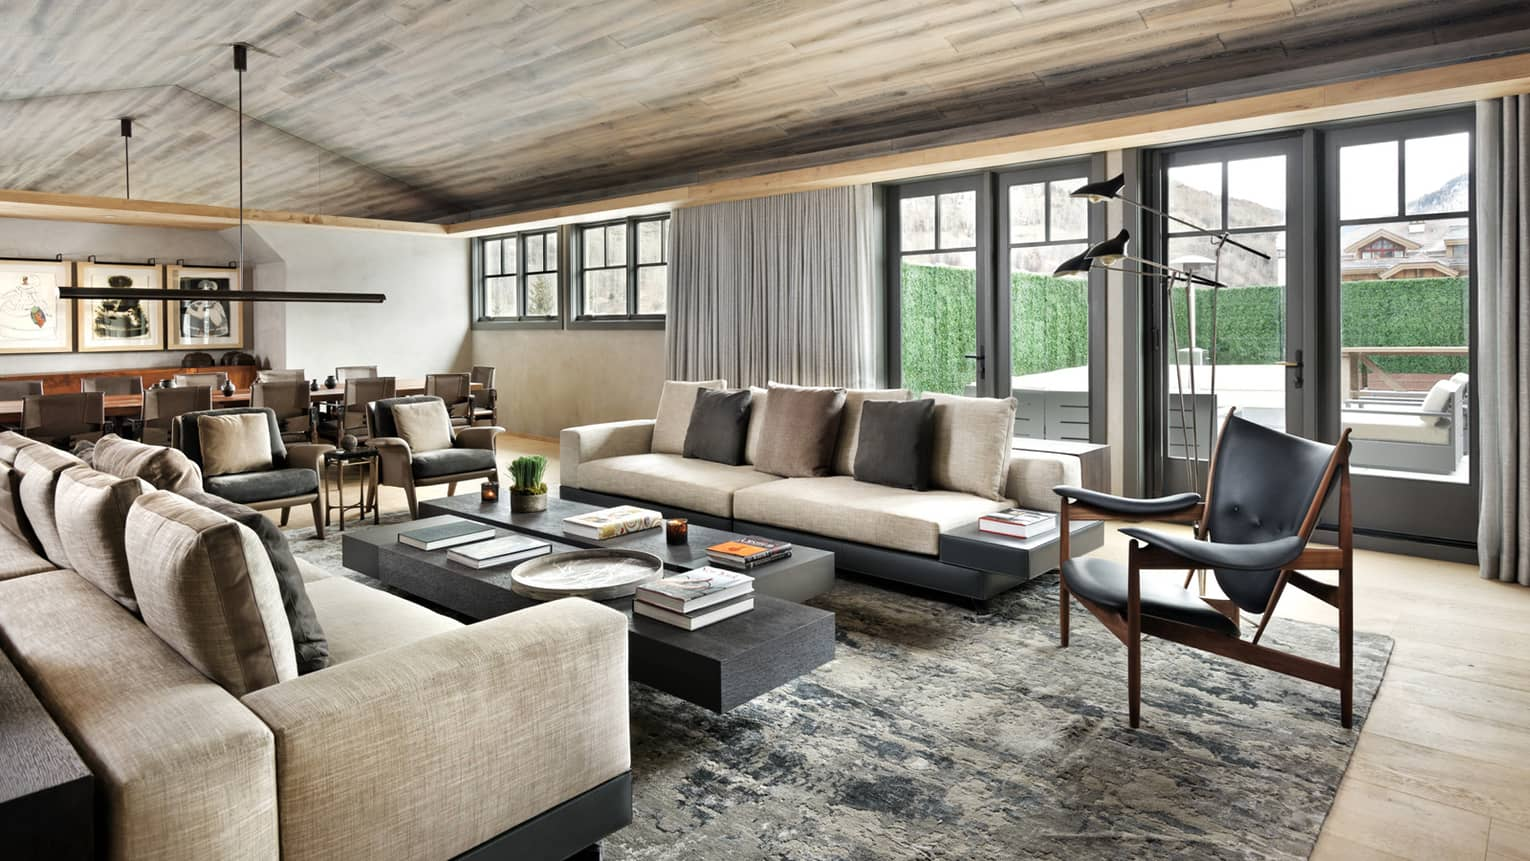 Long plush sofas, modern leather armchairs around large coffee table in bright living room